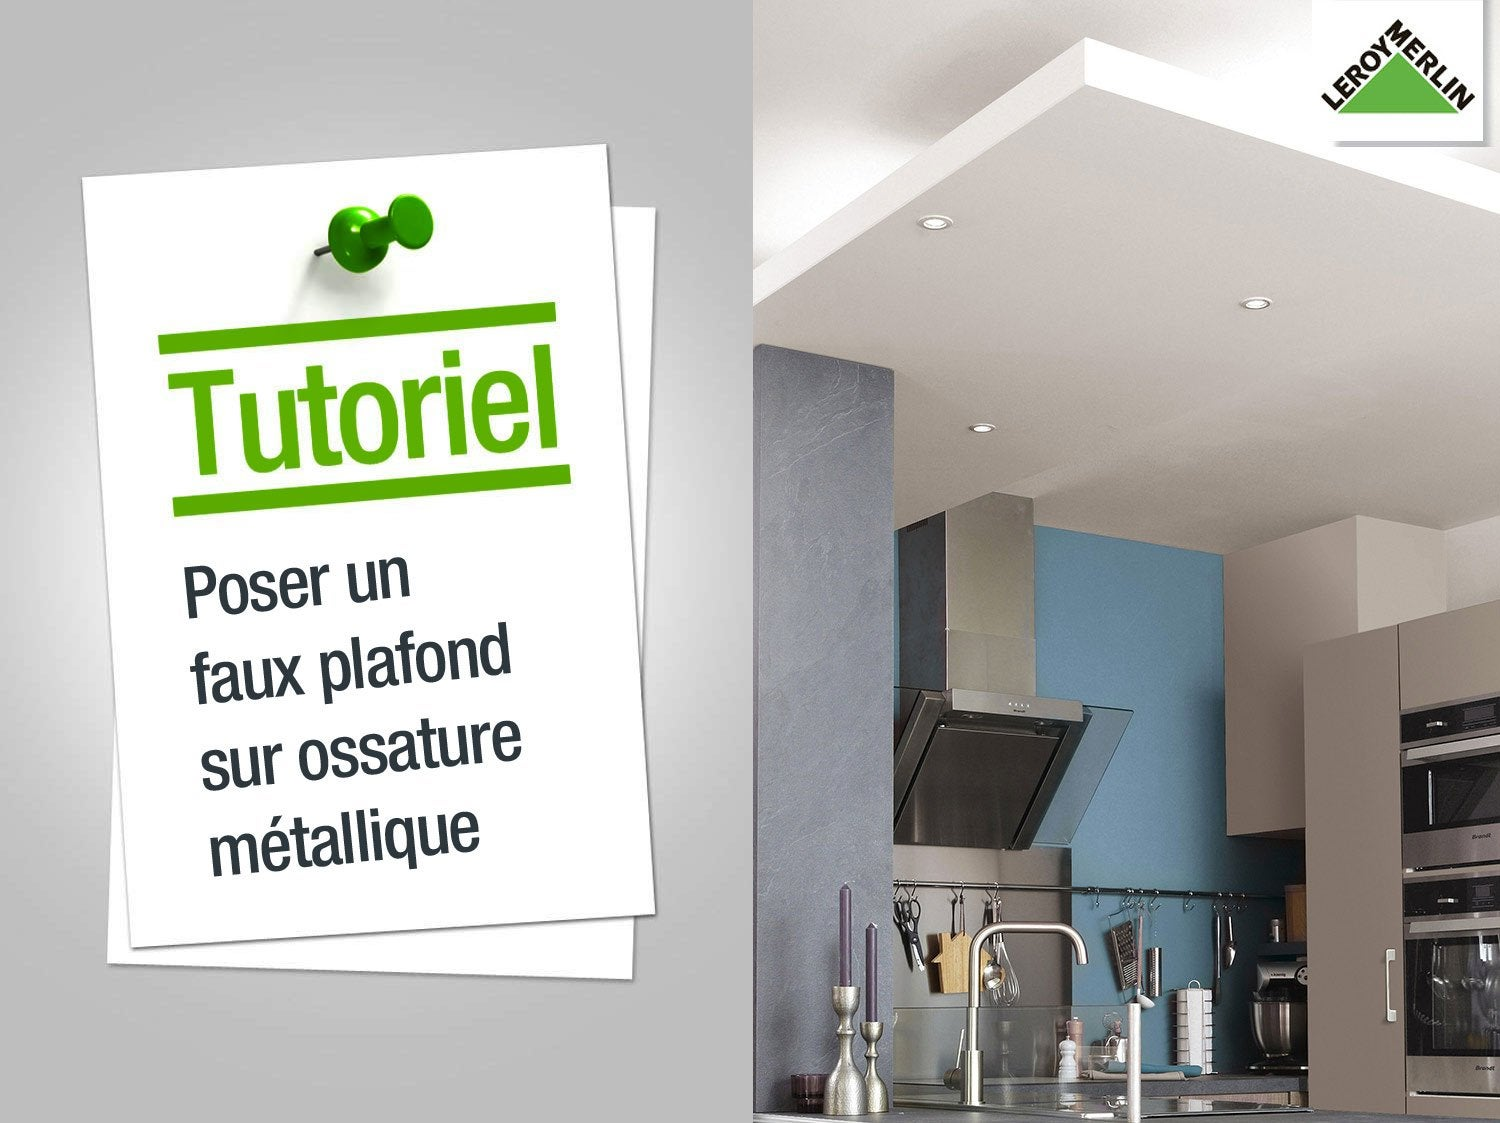 Comment monter un faux plafond 28 images installer un for Faire un faux plafond en bois